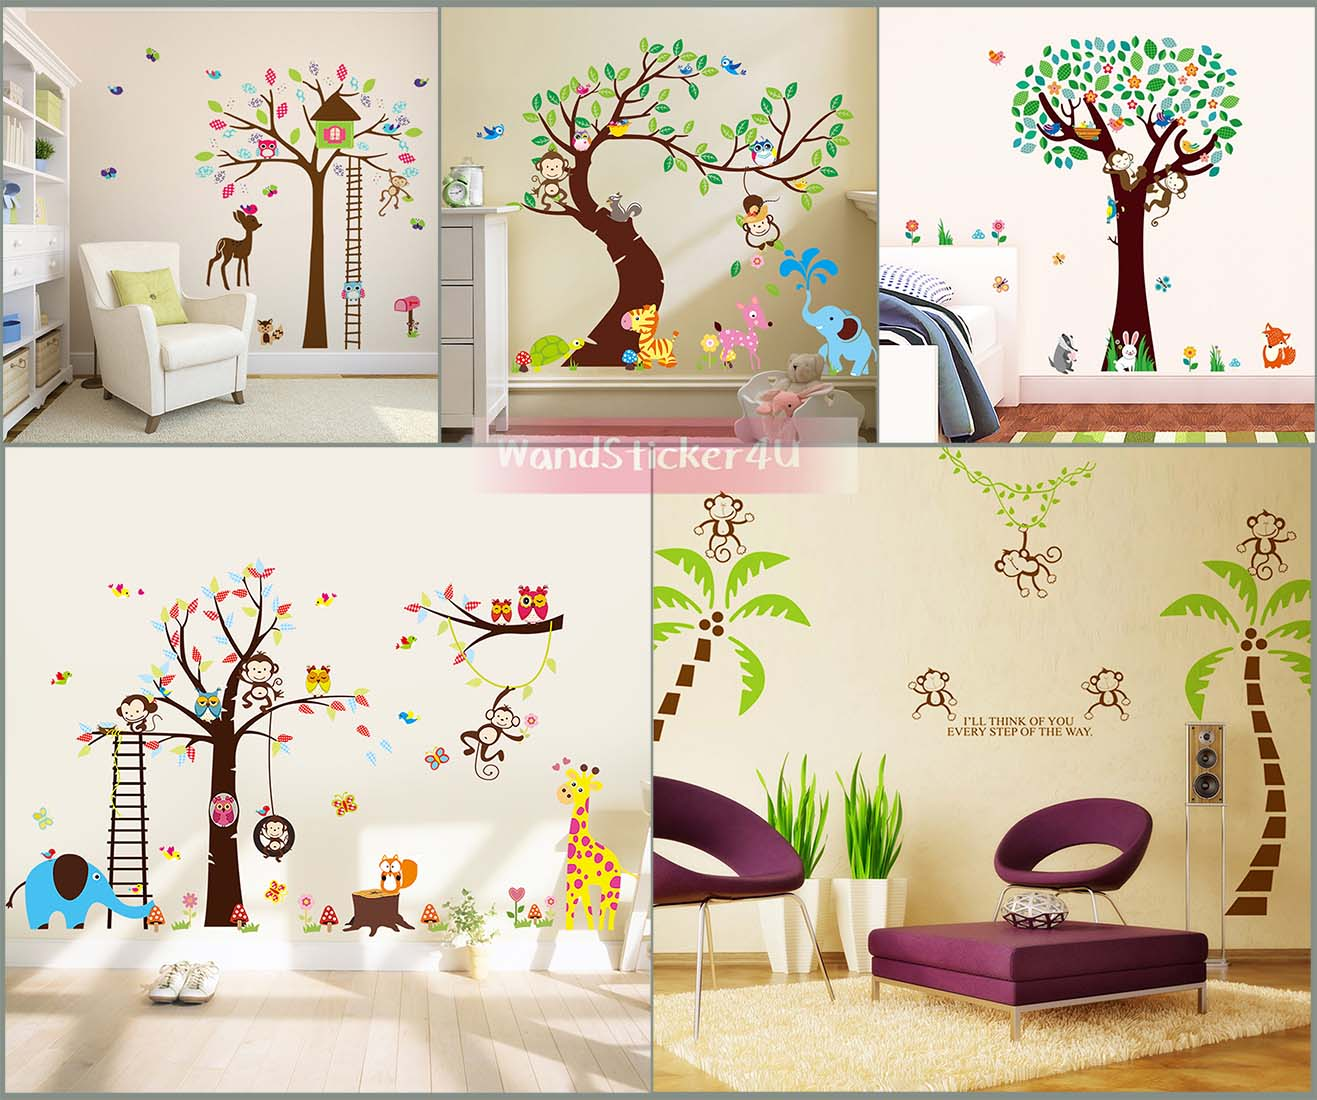 wandtattoo kinderzimmer baum afrika wald tiere zoo dschungel wandsticker kinder ebay. Black Bedroom Furniture Sets. Home Design Ideas